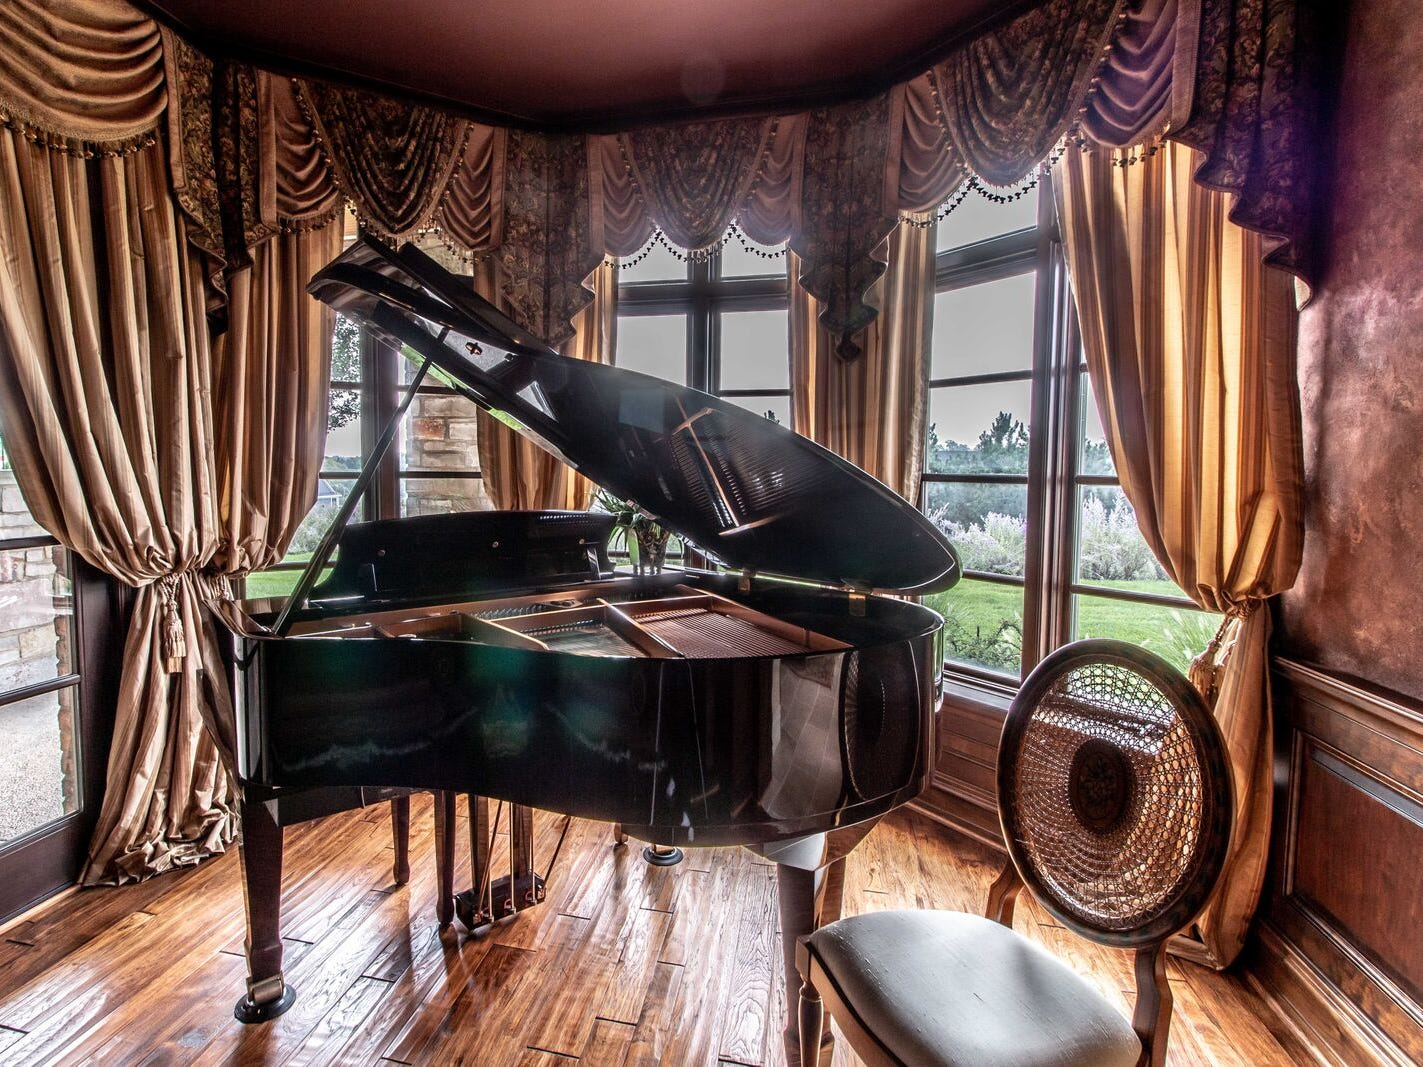 The baby grand piano has its own nook.